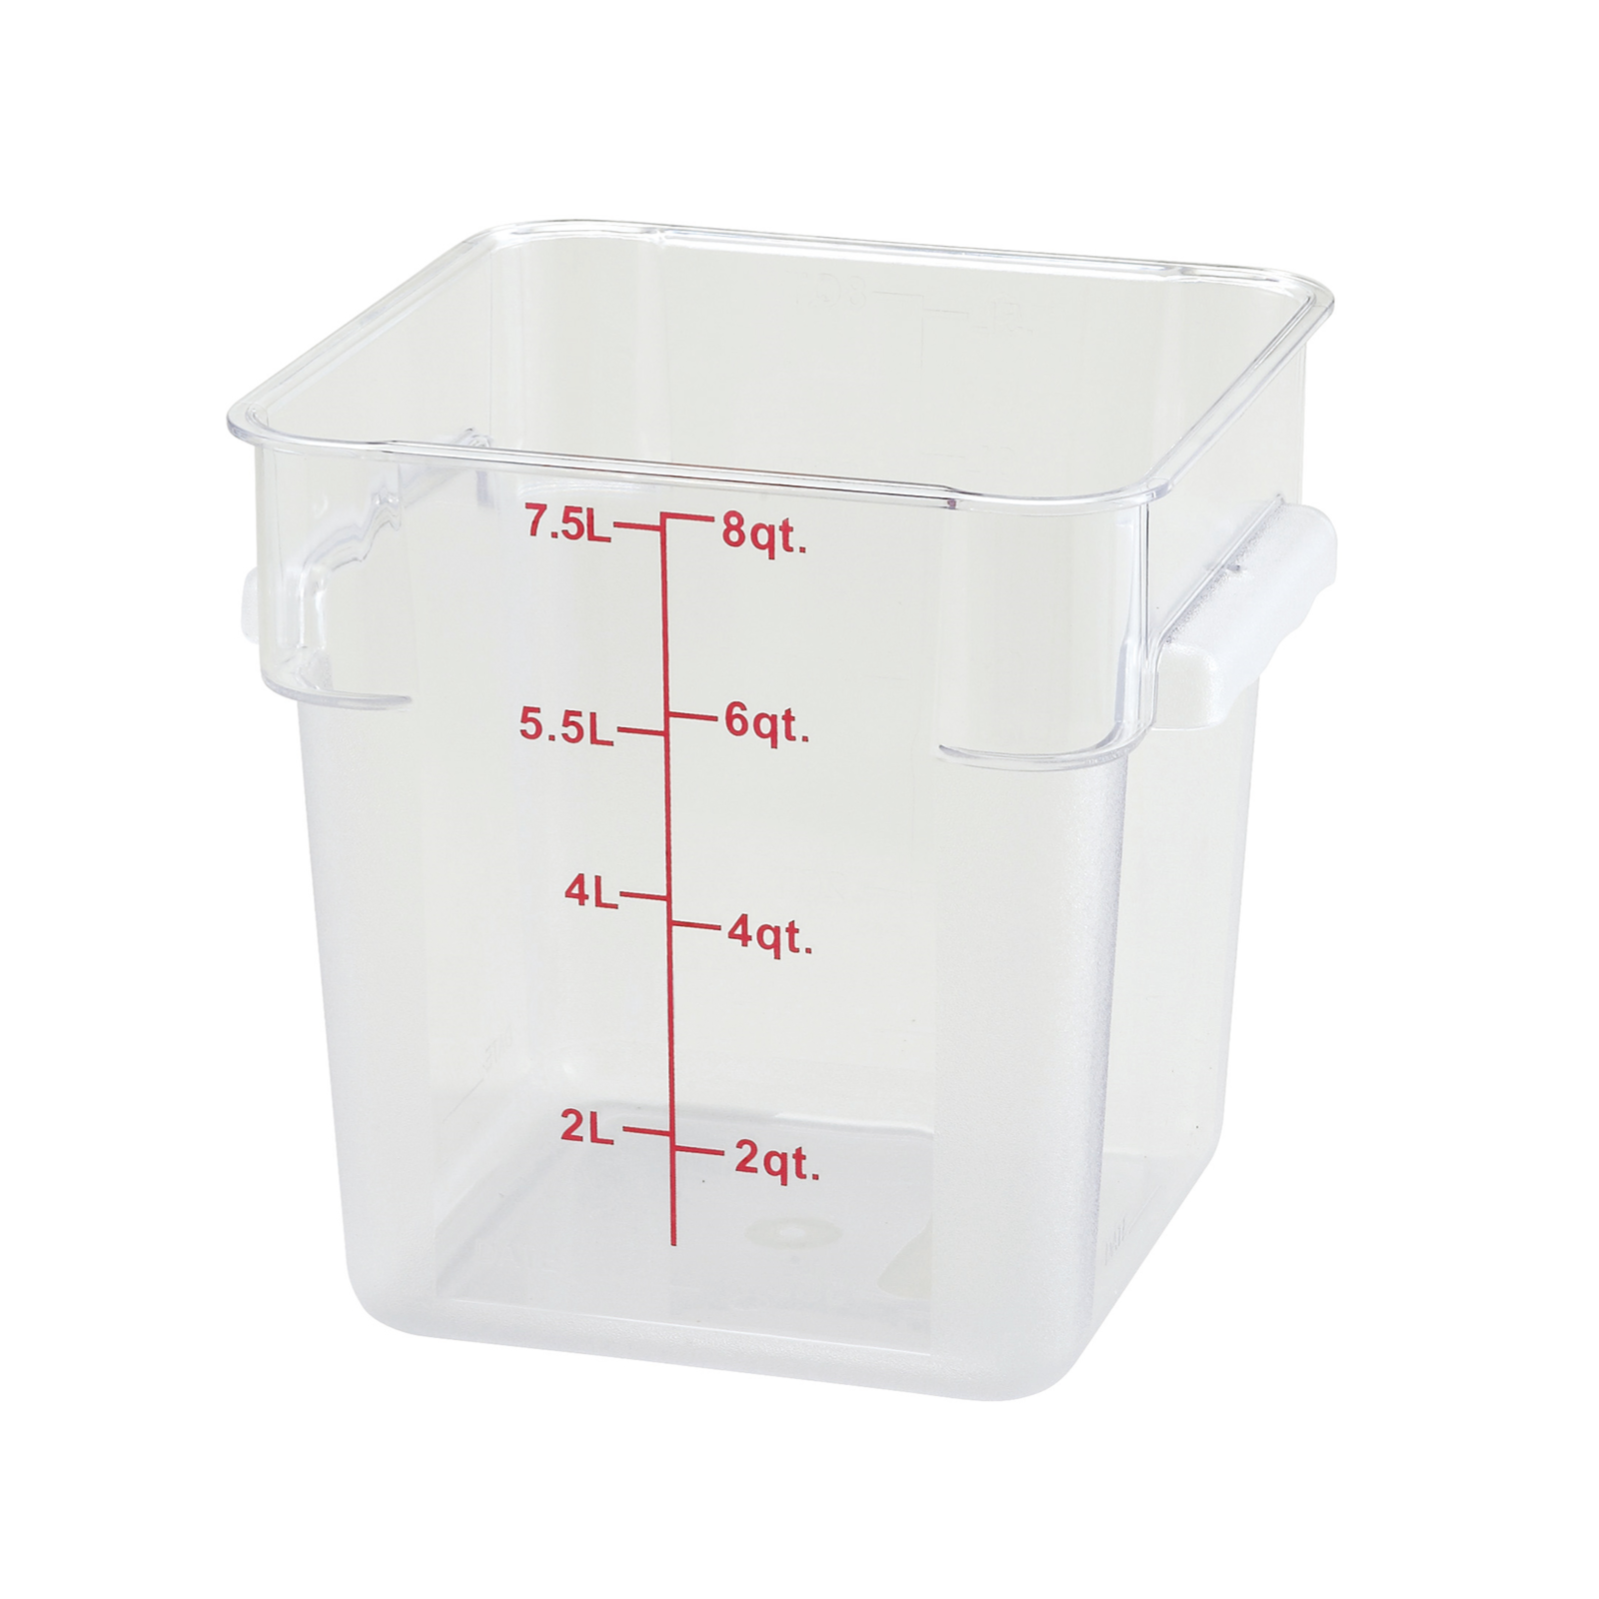 2700-44 Winco Food Storage Container 8qt square clear